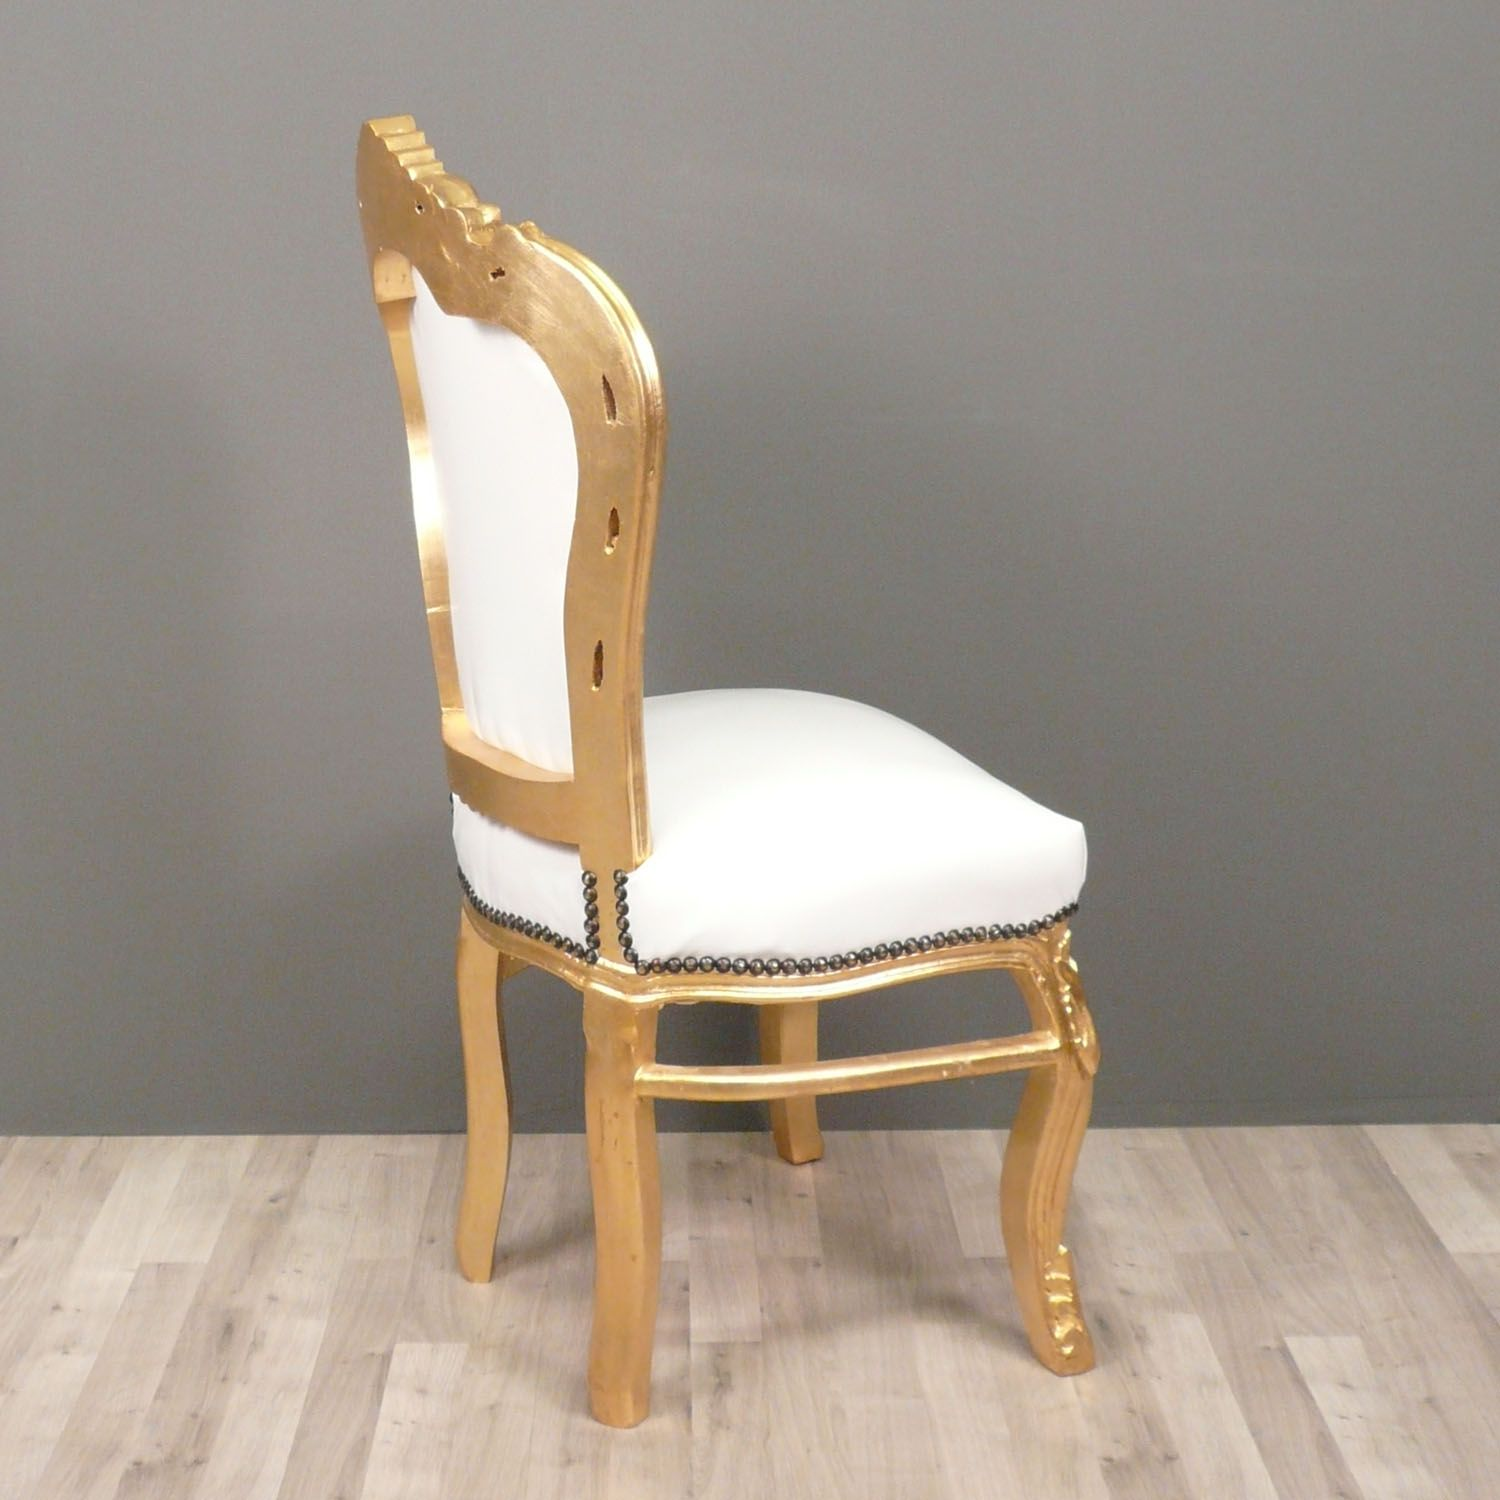 Baroque chair white and gold chairs pinterest baroque chairs and gold - Stoel dineren baroque ...